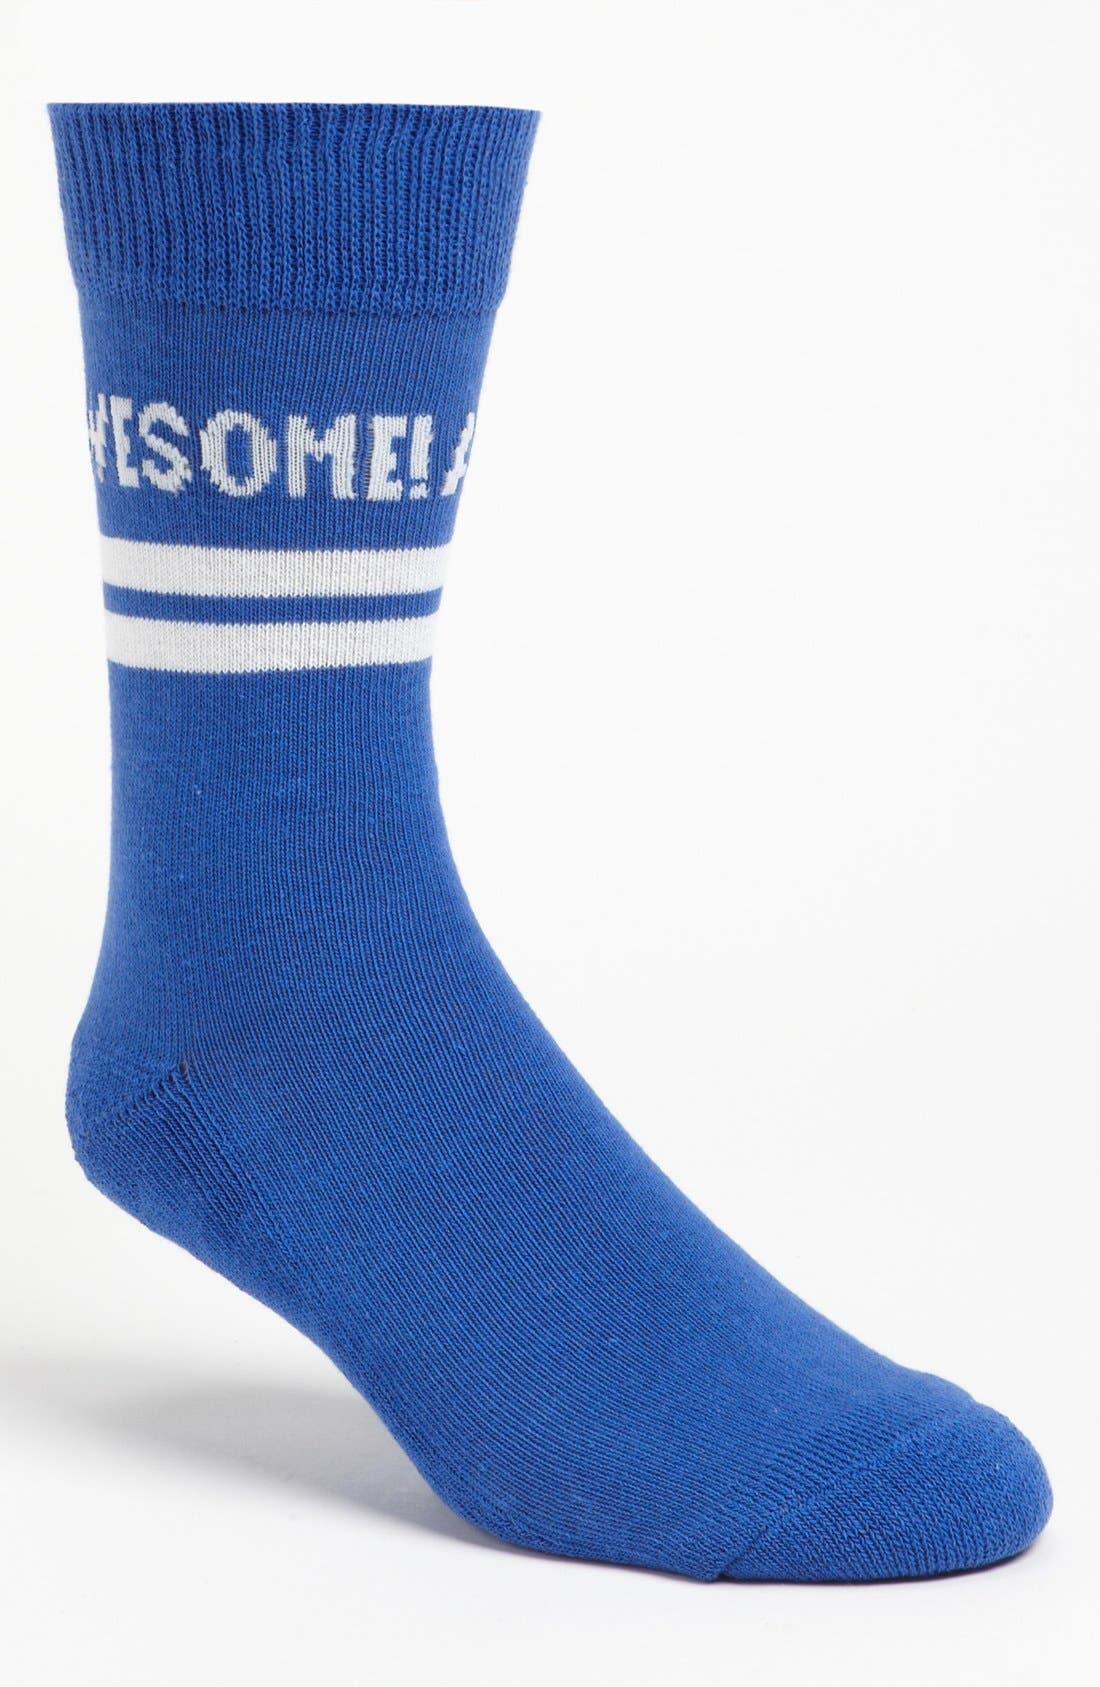 Main Image - Topman 'Awesome' Crew Socks